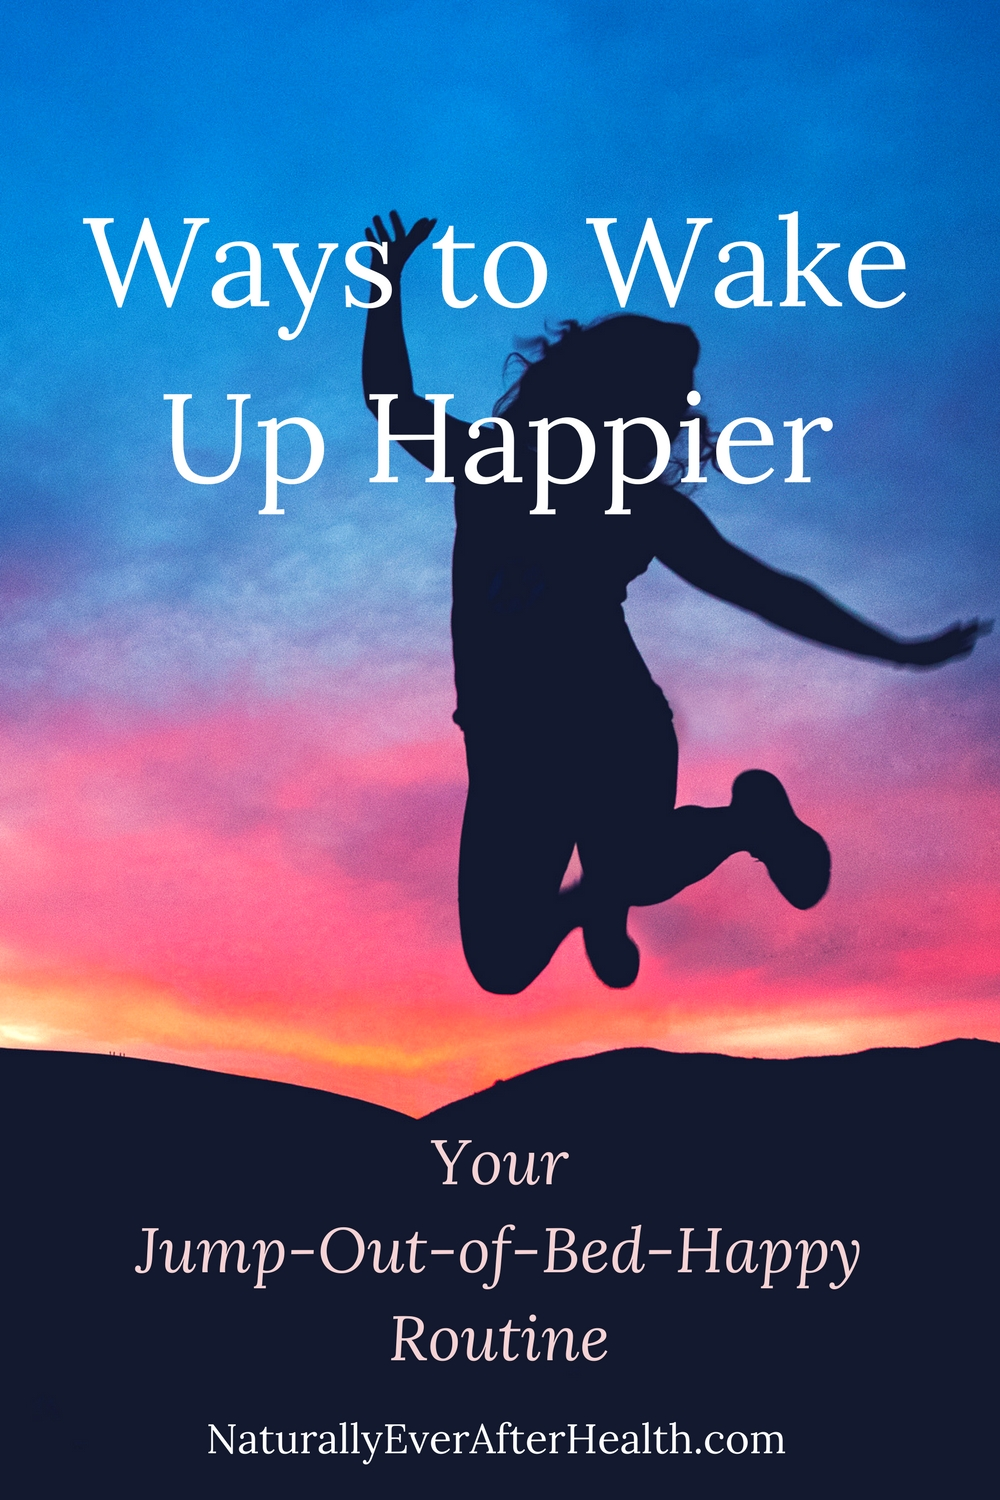 Does anxiety or depression keep you stuck in bed? Here are a few ways to wake up happier!